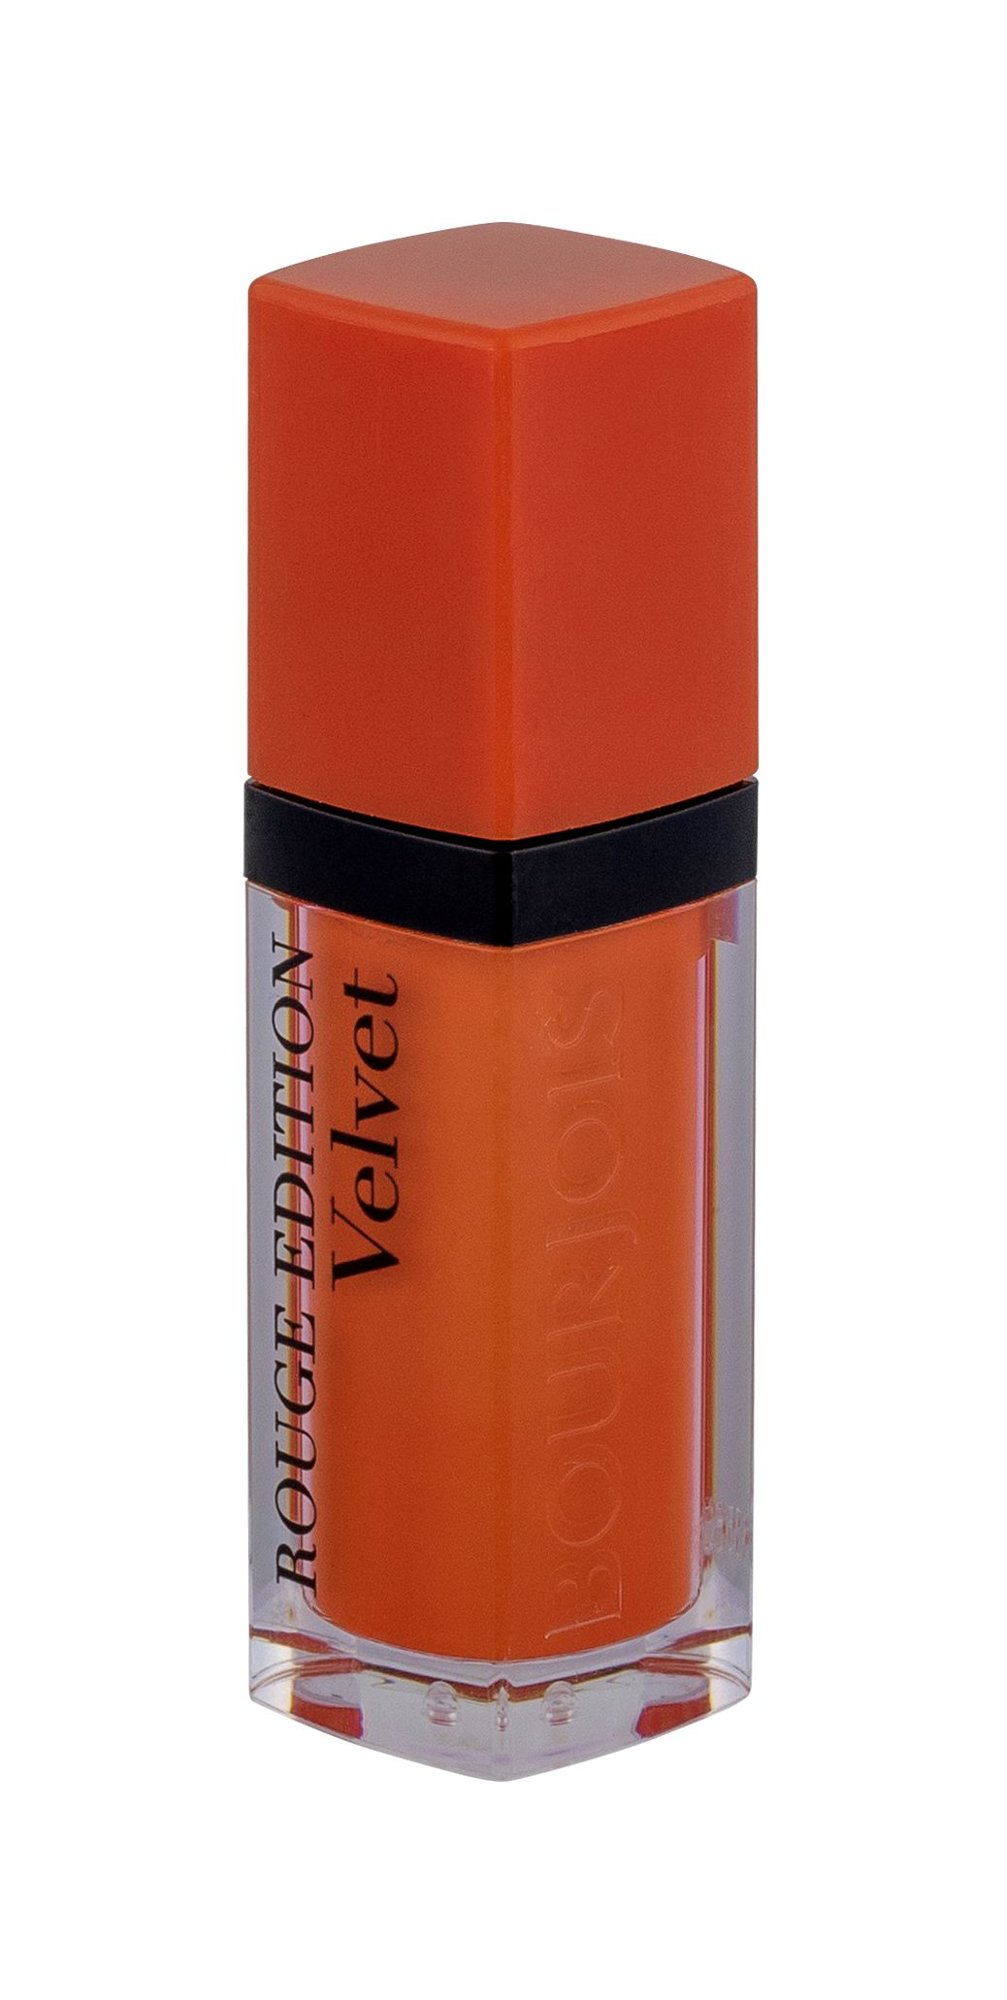 BOURJOIS Paris Rouge Edition Lipstick 7,7ml 30 Oranginal